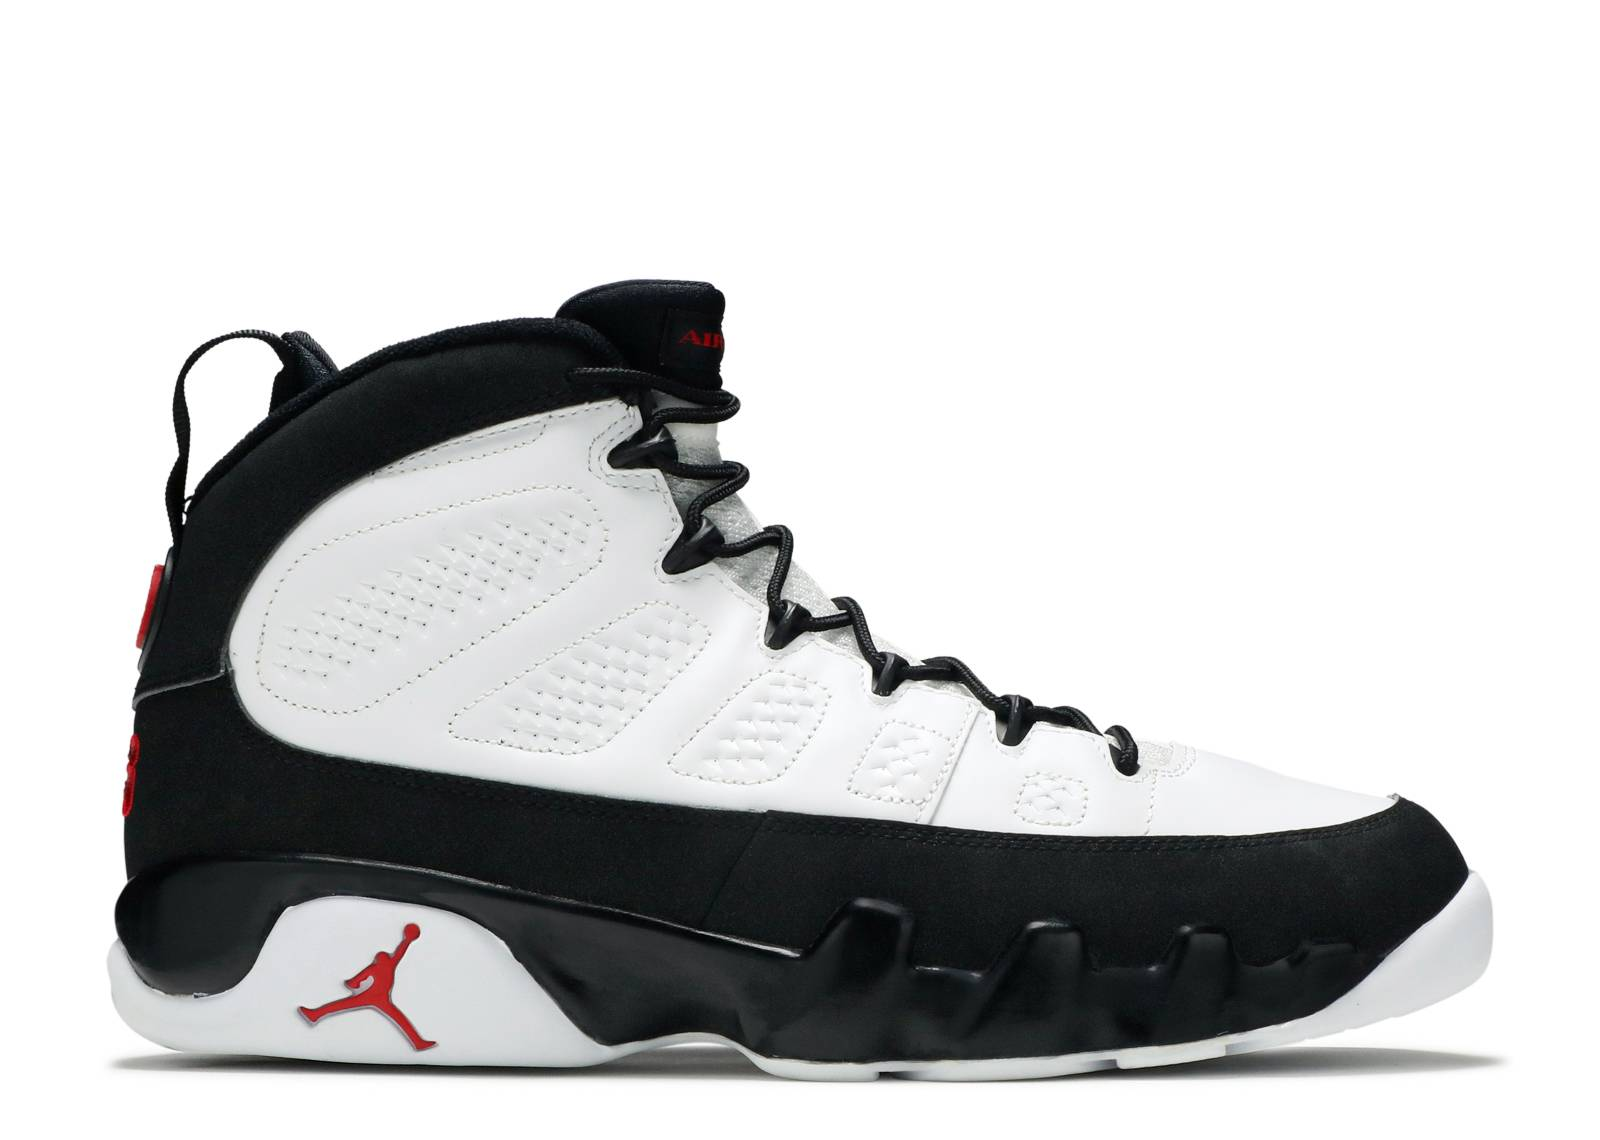 watch 218d1 7a7de Air Jordan 9 (IX) Shoes - Nike | Flight Club